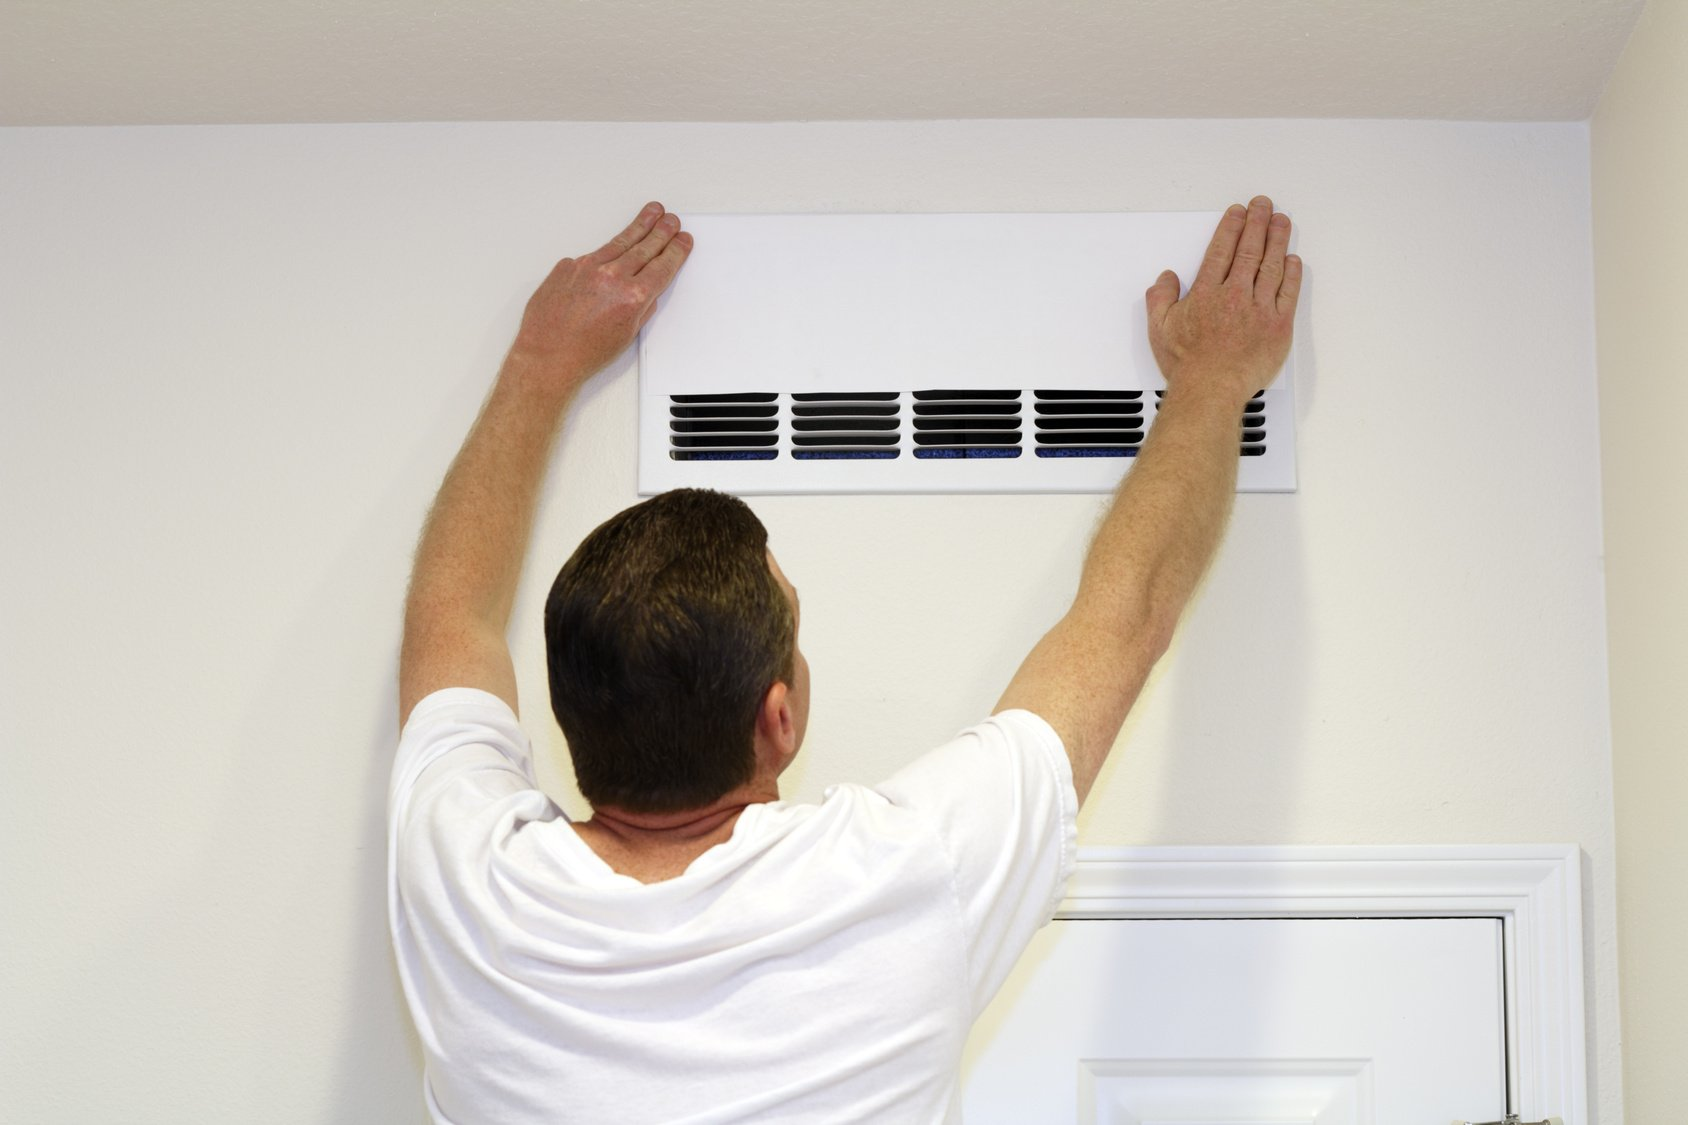 #73412F Sprucing Up Your HVAC Vent Covers AND Services Best 3573 Heating Duct Covers photos with 1688x1125 px on helpvideos.info - Air Conditioners, Air Coolers and more